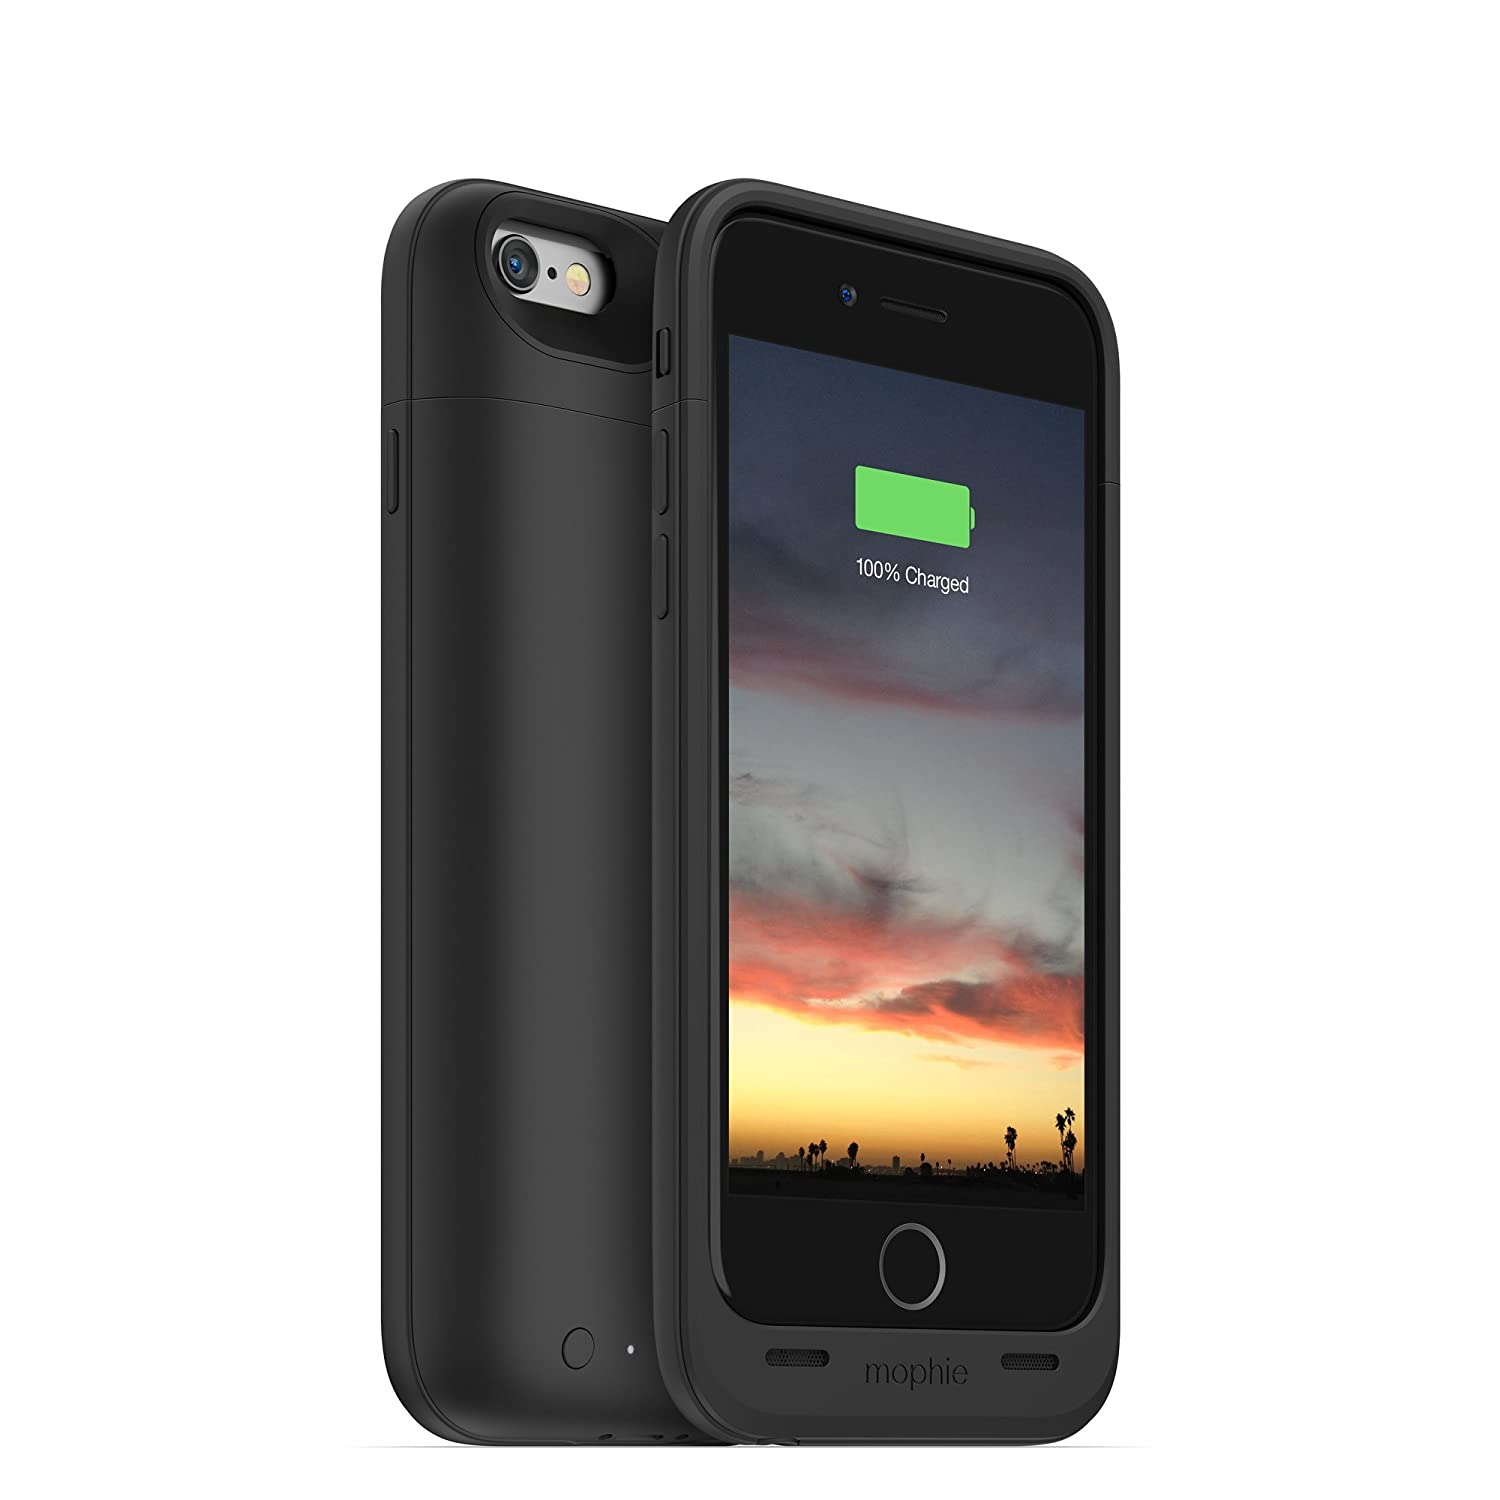 buy online 1f5e5 f0715 mophie juice pack air - Slim Protective Mobile Battery Pack Case for iPhone  6/6s - Black